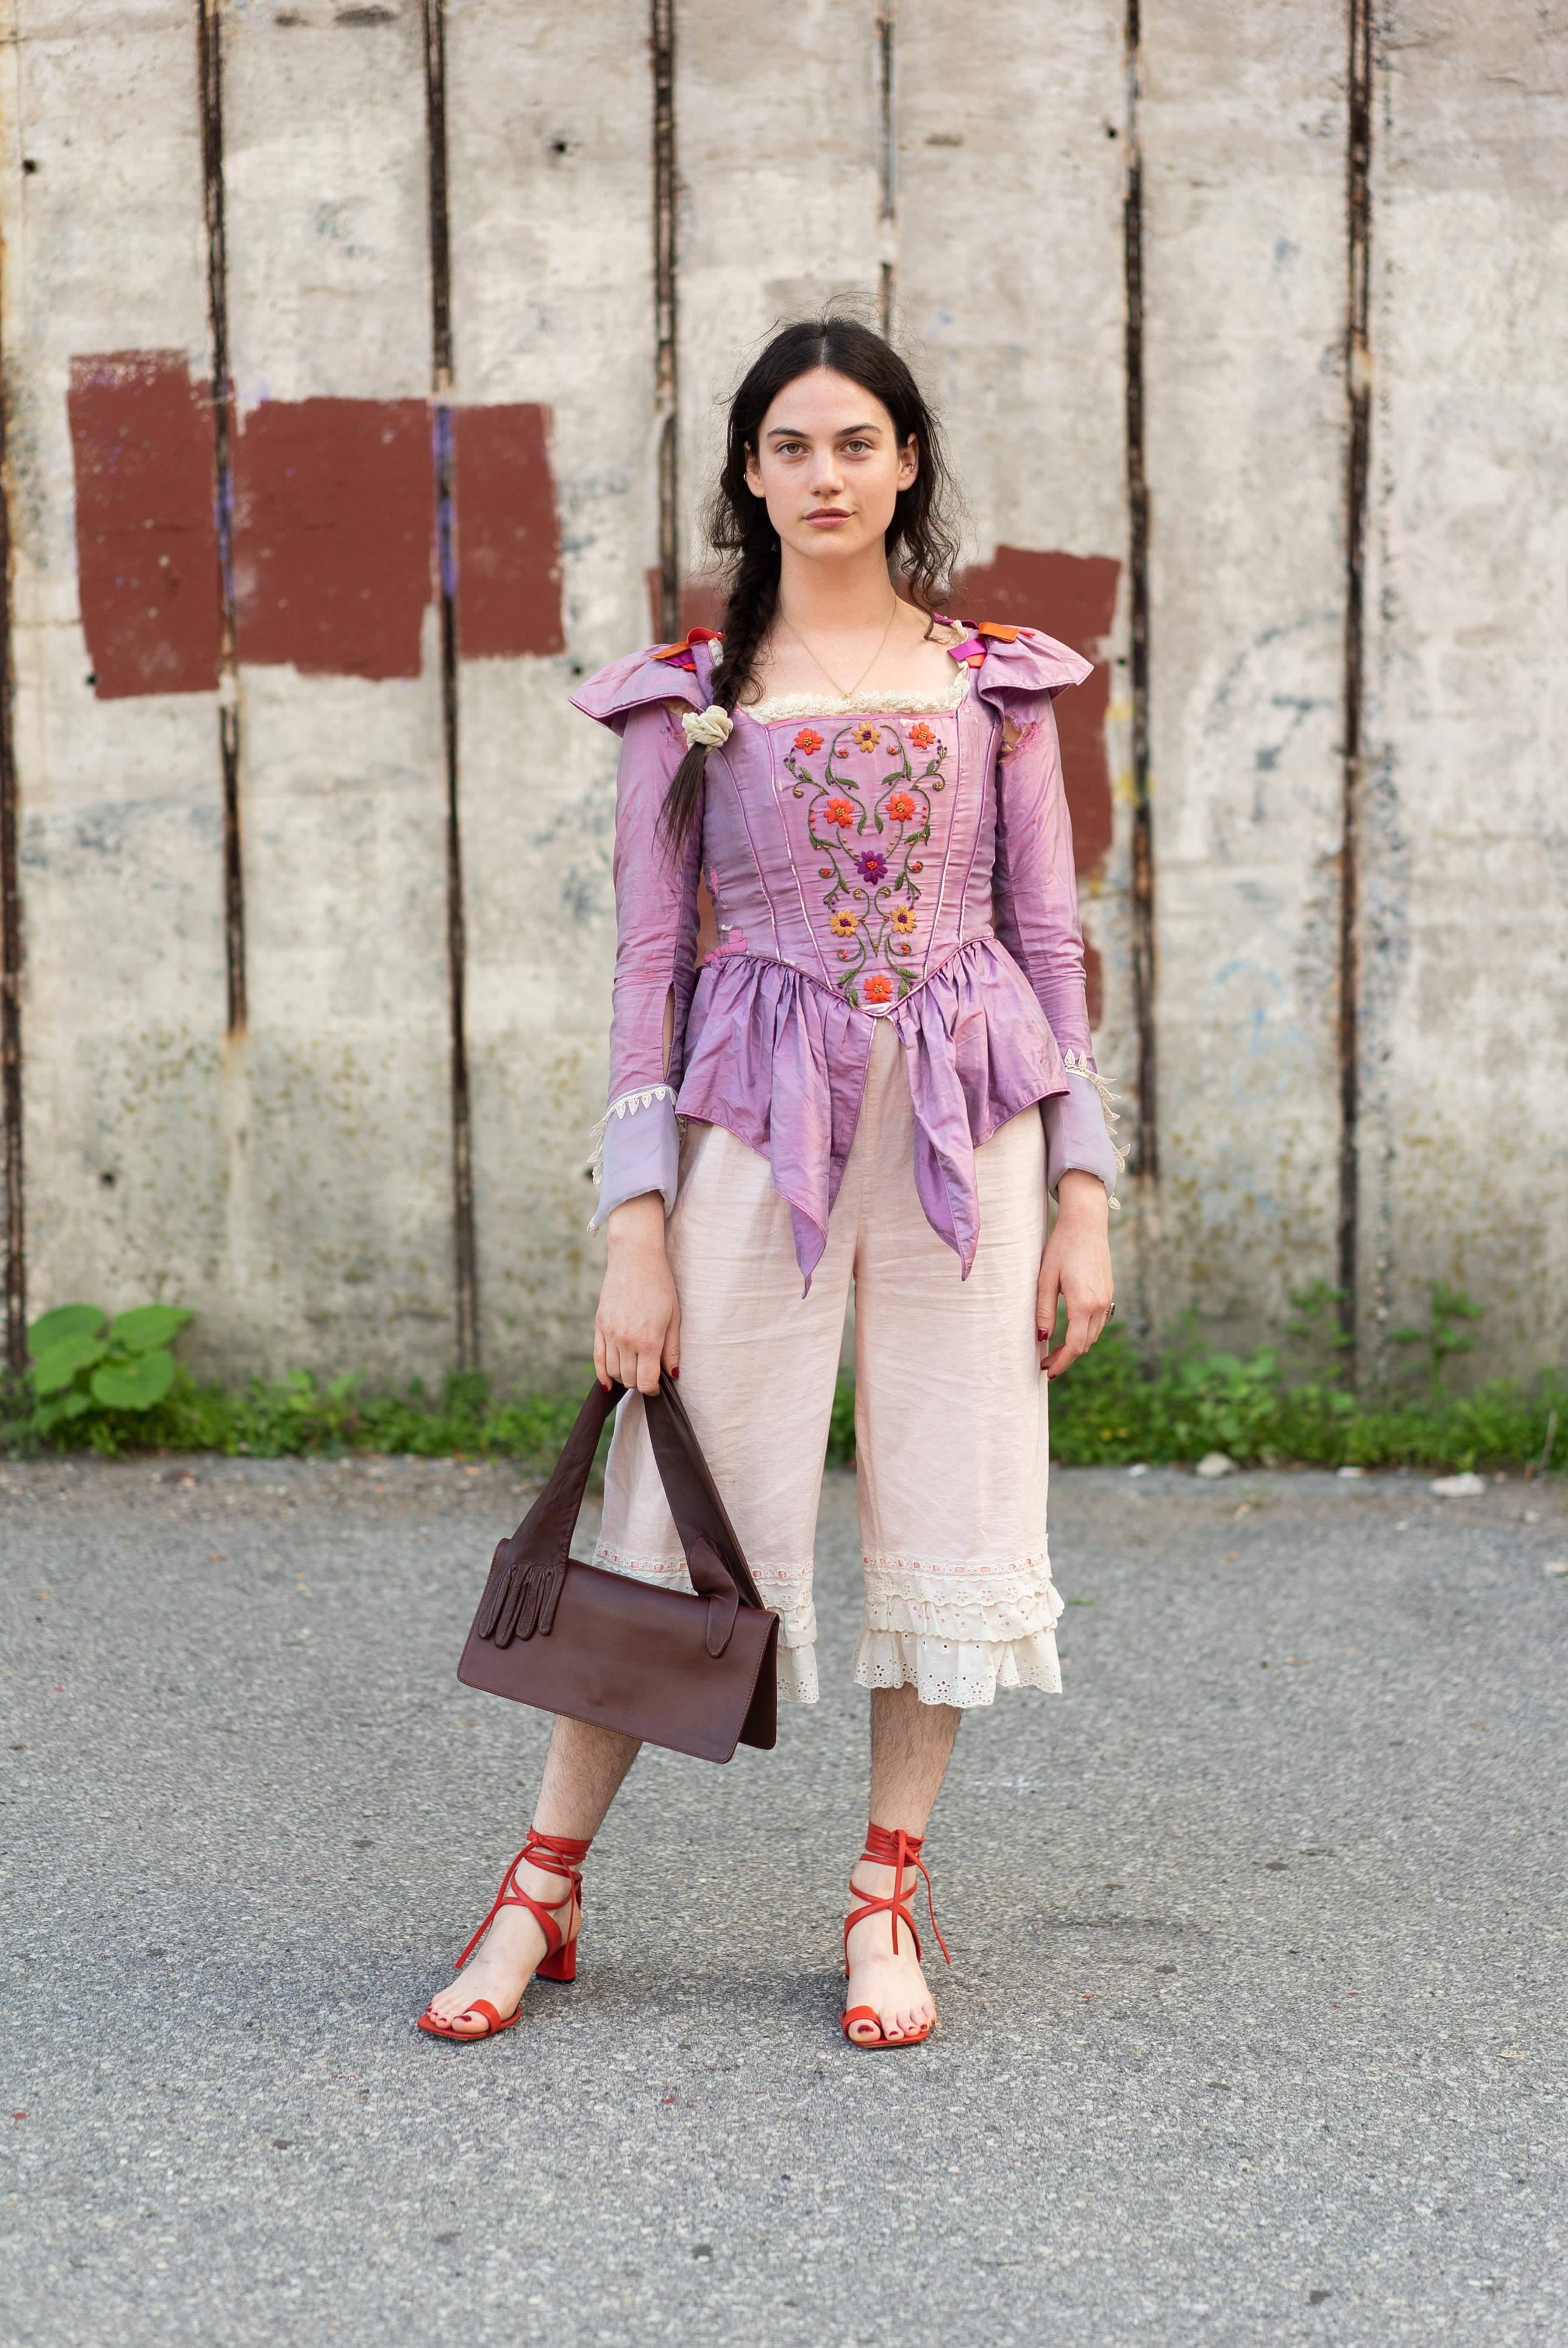 Who Are These Stylish People at Day 4 of Fashion Week?